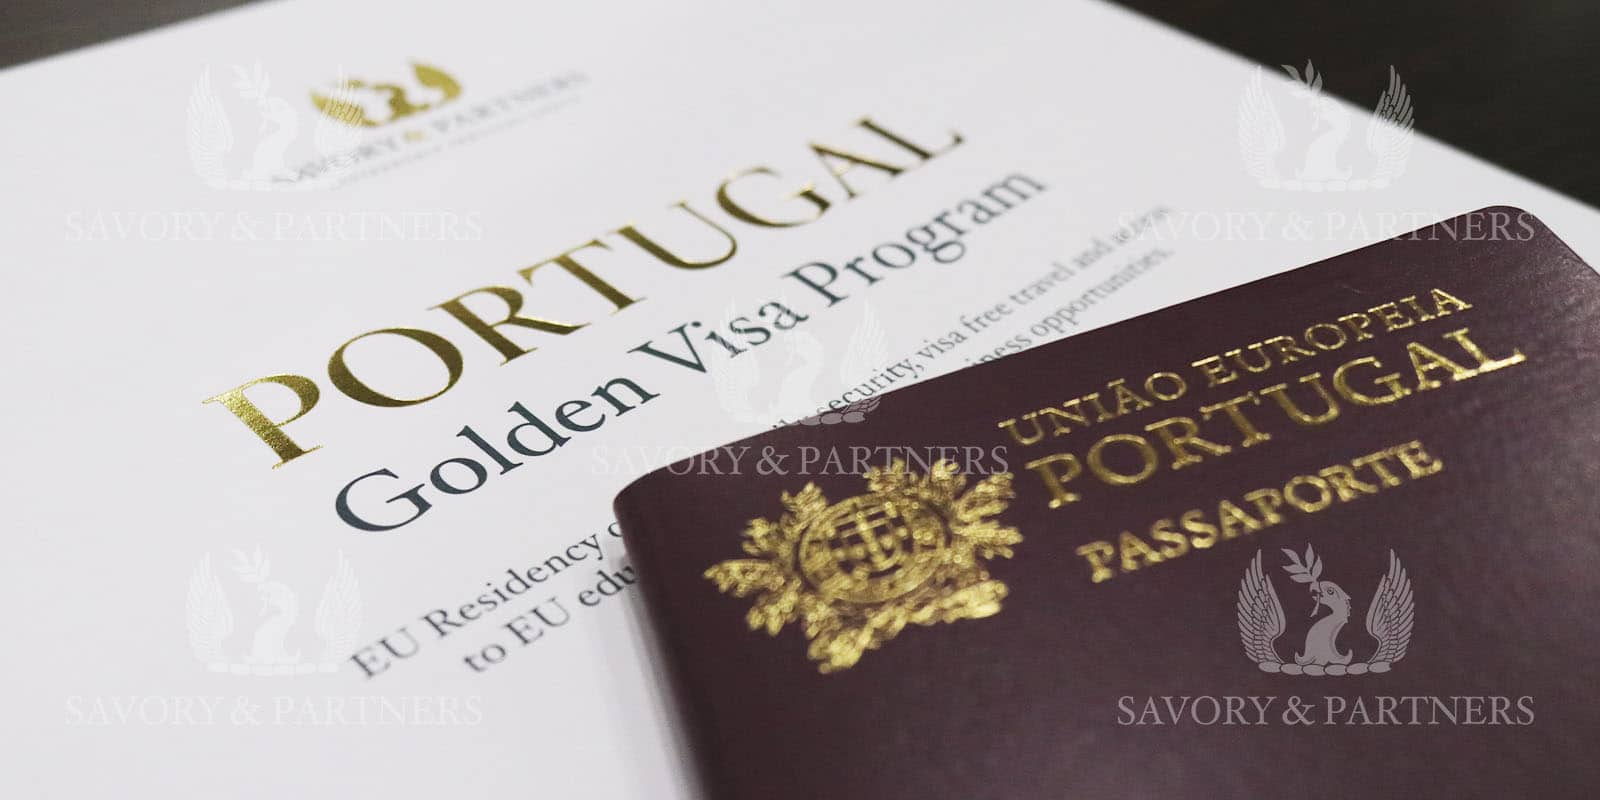 Portugal passport at Savory & Partners Office in Dubai